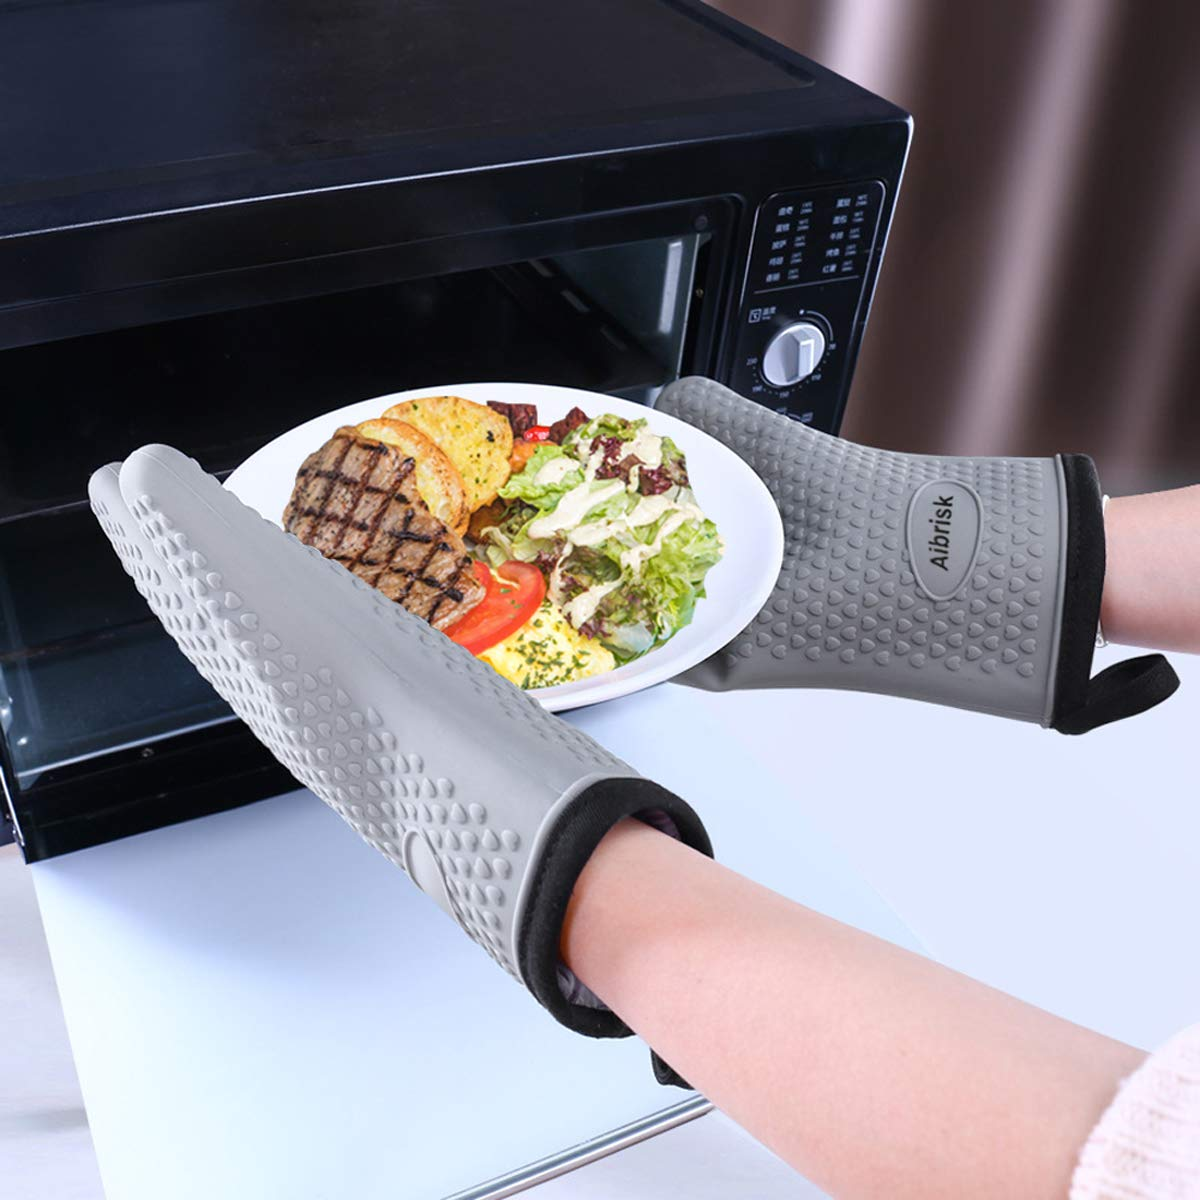 Aibrisk Silicone Oven Mitts And Pot Holders 4pcs Thicken Heat Resistant Flexible Non Slip Surface Cooking Gloves And Potholders Trivet Mats For Safe Oven Bbq Kitchen Counter Hot Dishes Or Pans Kitchen Dining